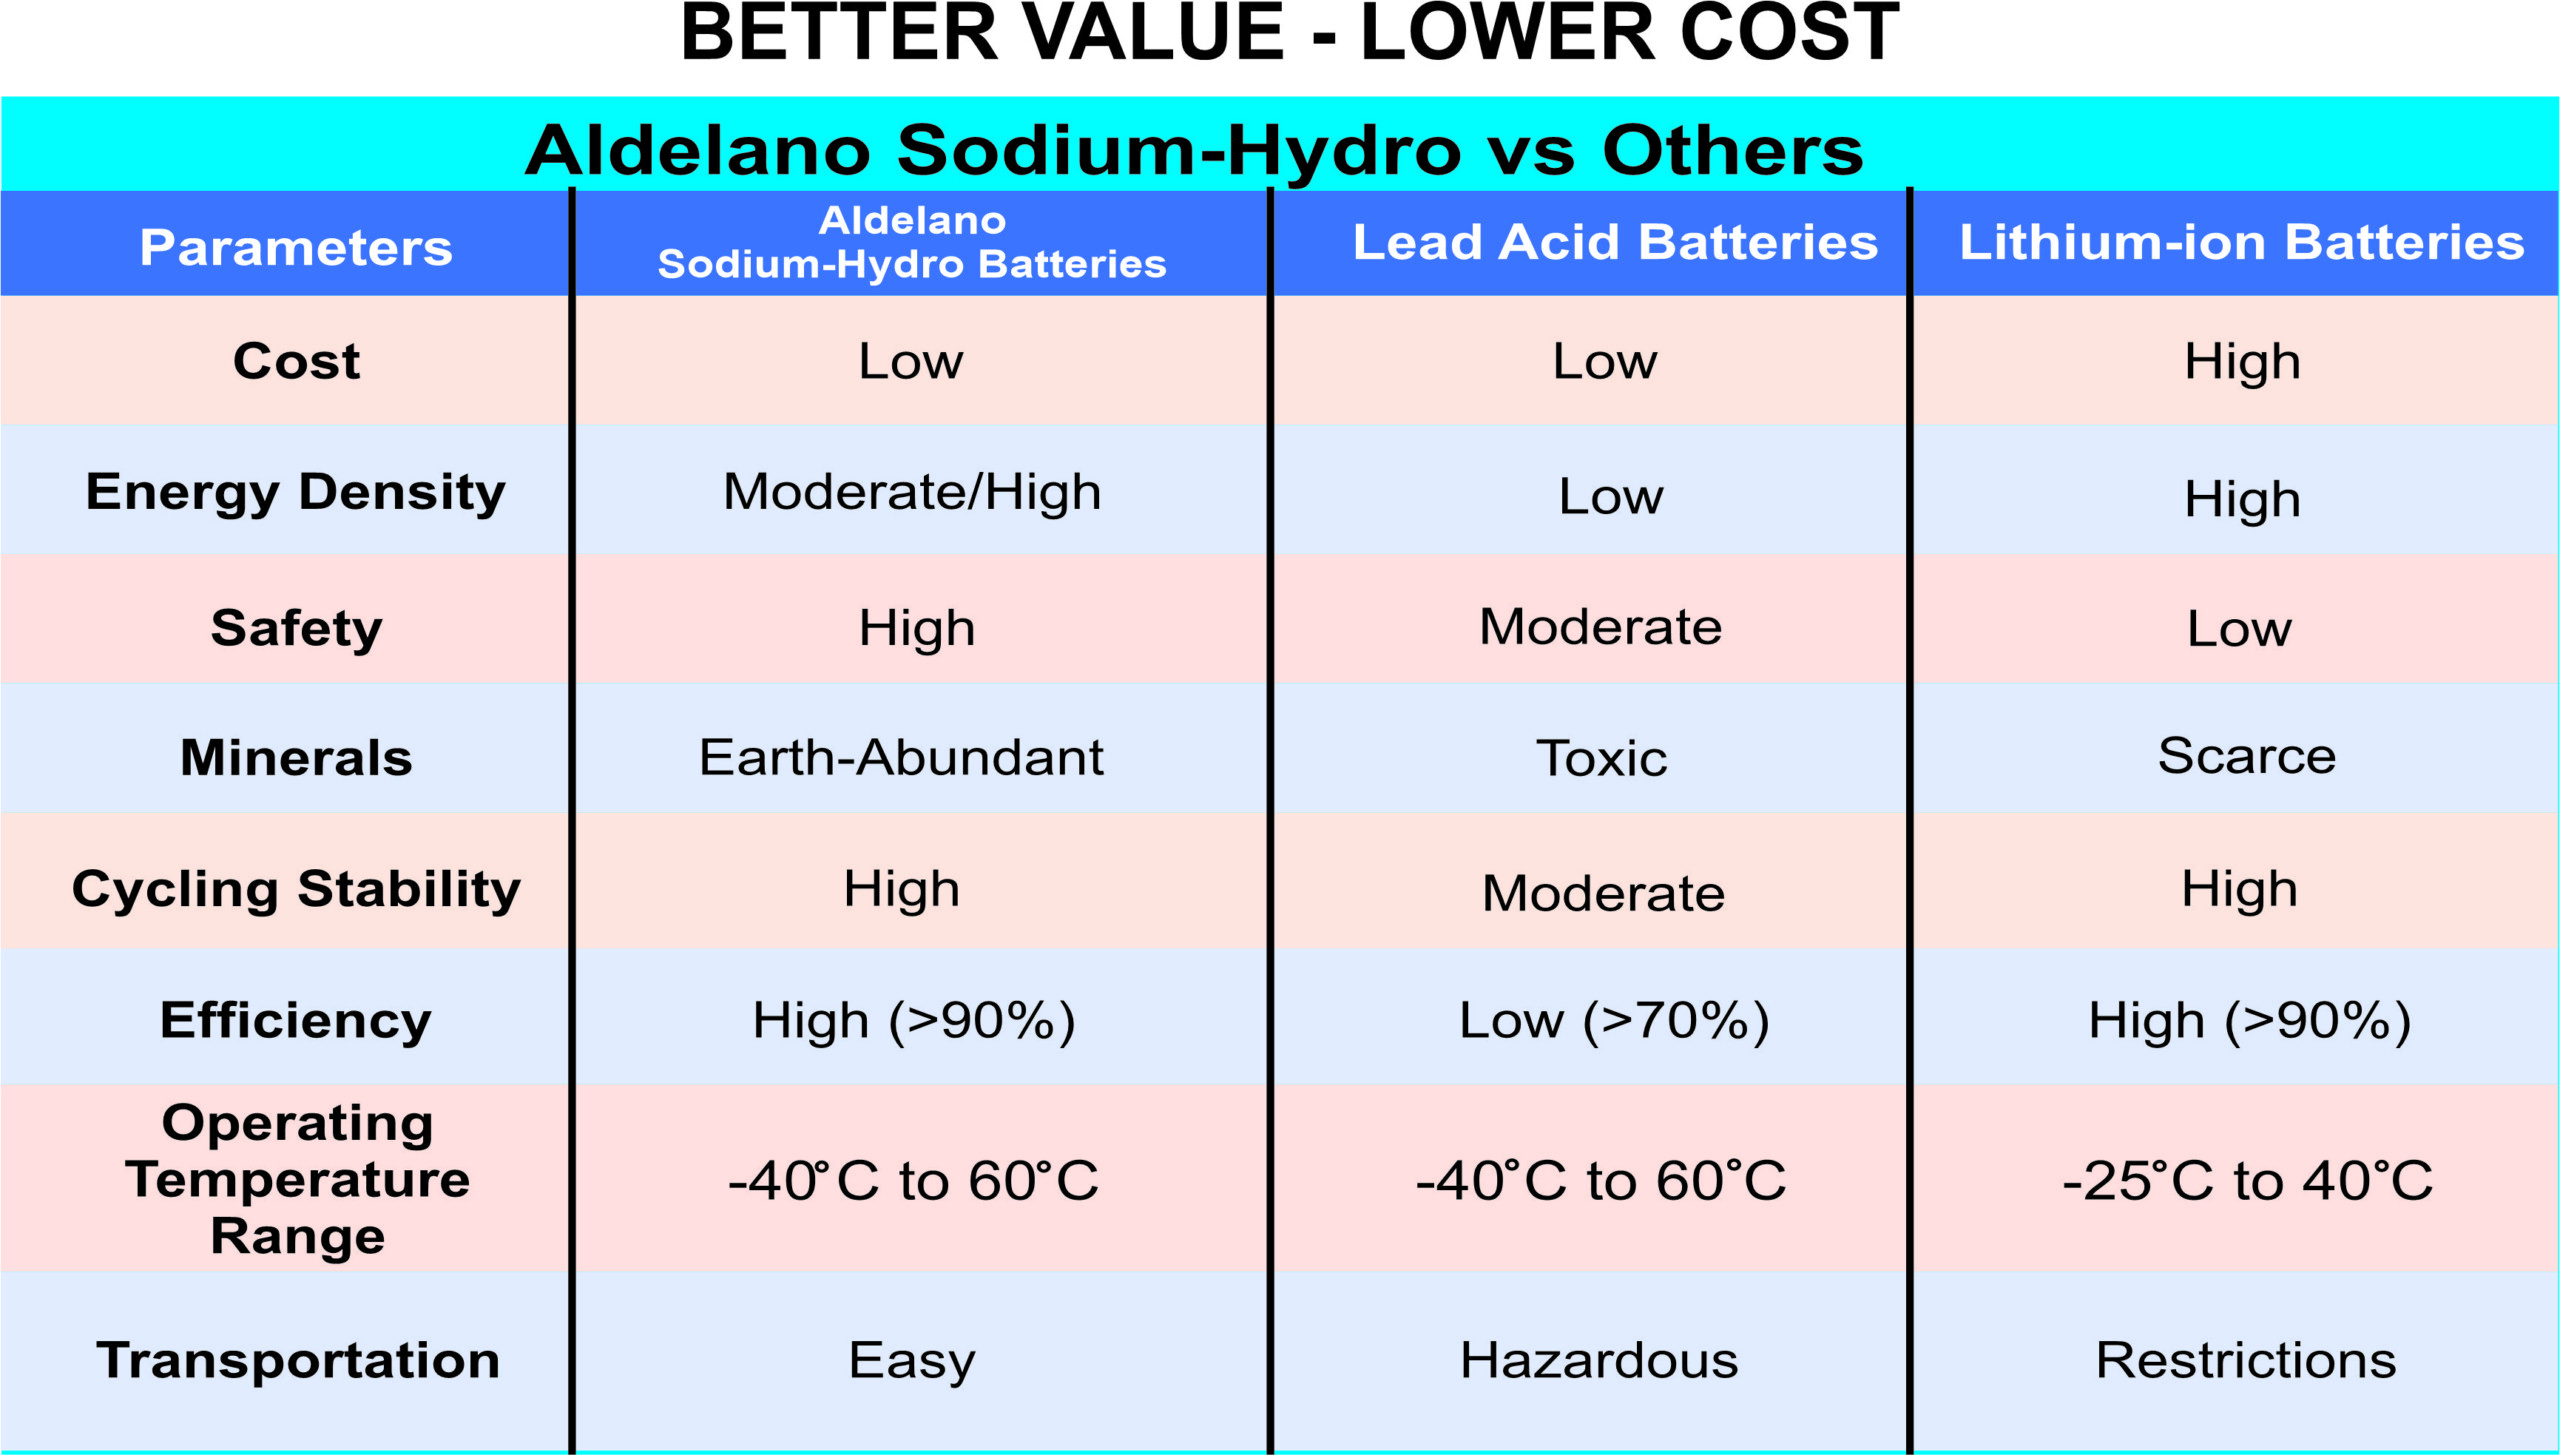 Sodium Hydro Battery - Better Quality, Lower Cost